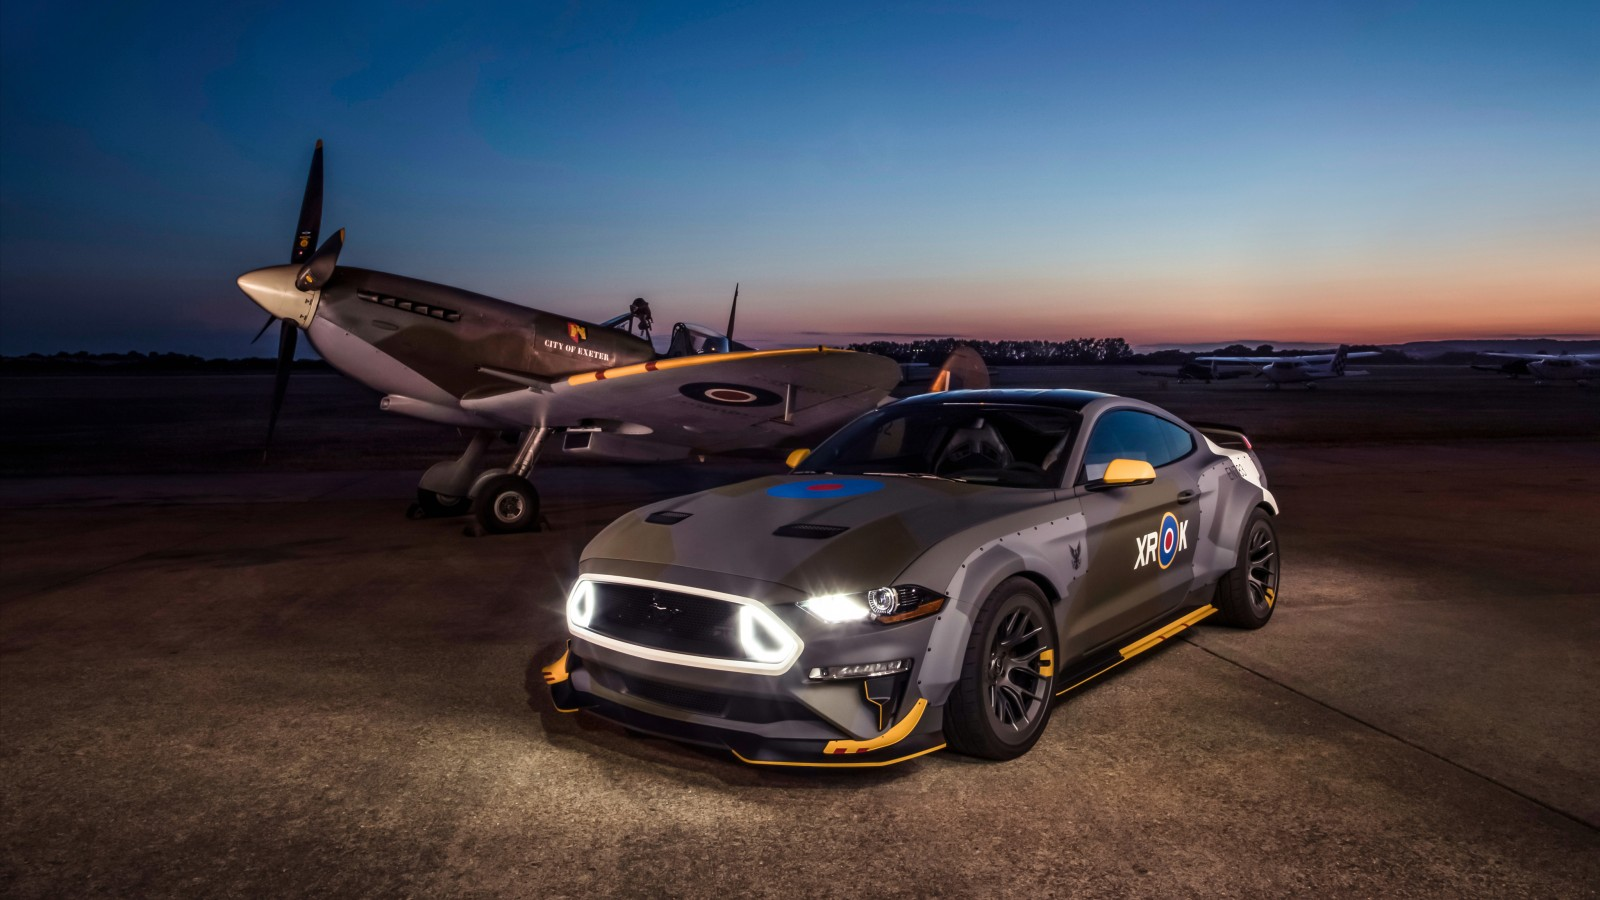 Ford Eagle Squadron Mustang GT 2018 4K 2 Wallpaper | HD Car Wallpapers | ID #10826